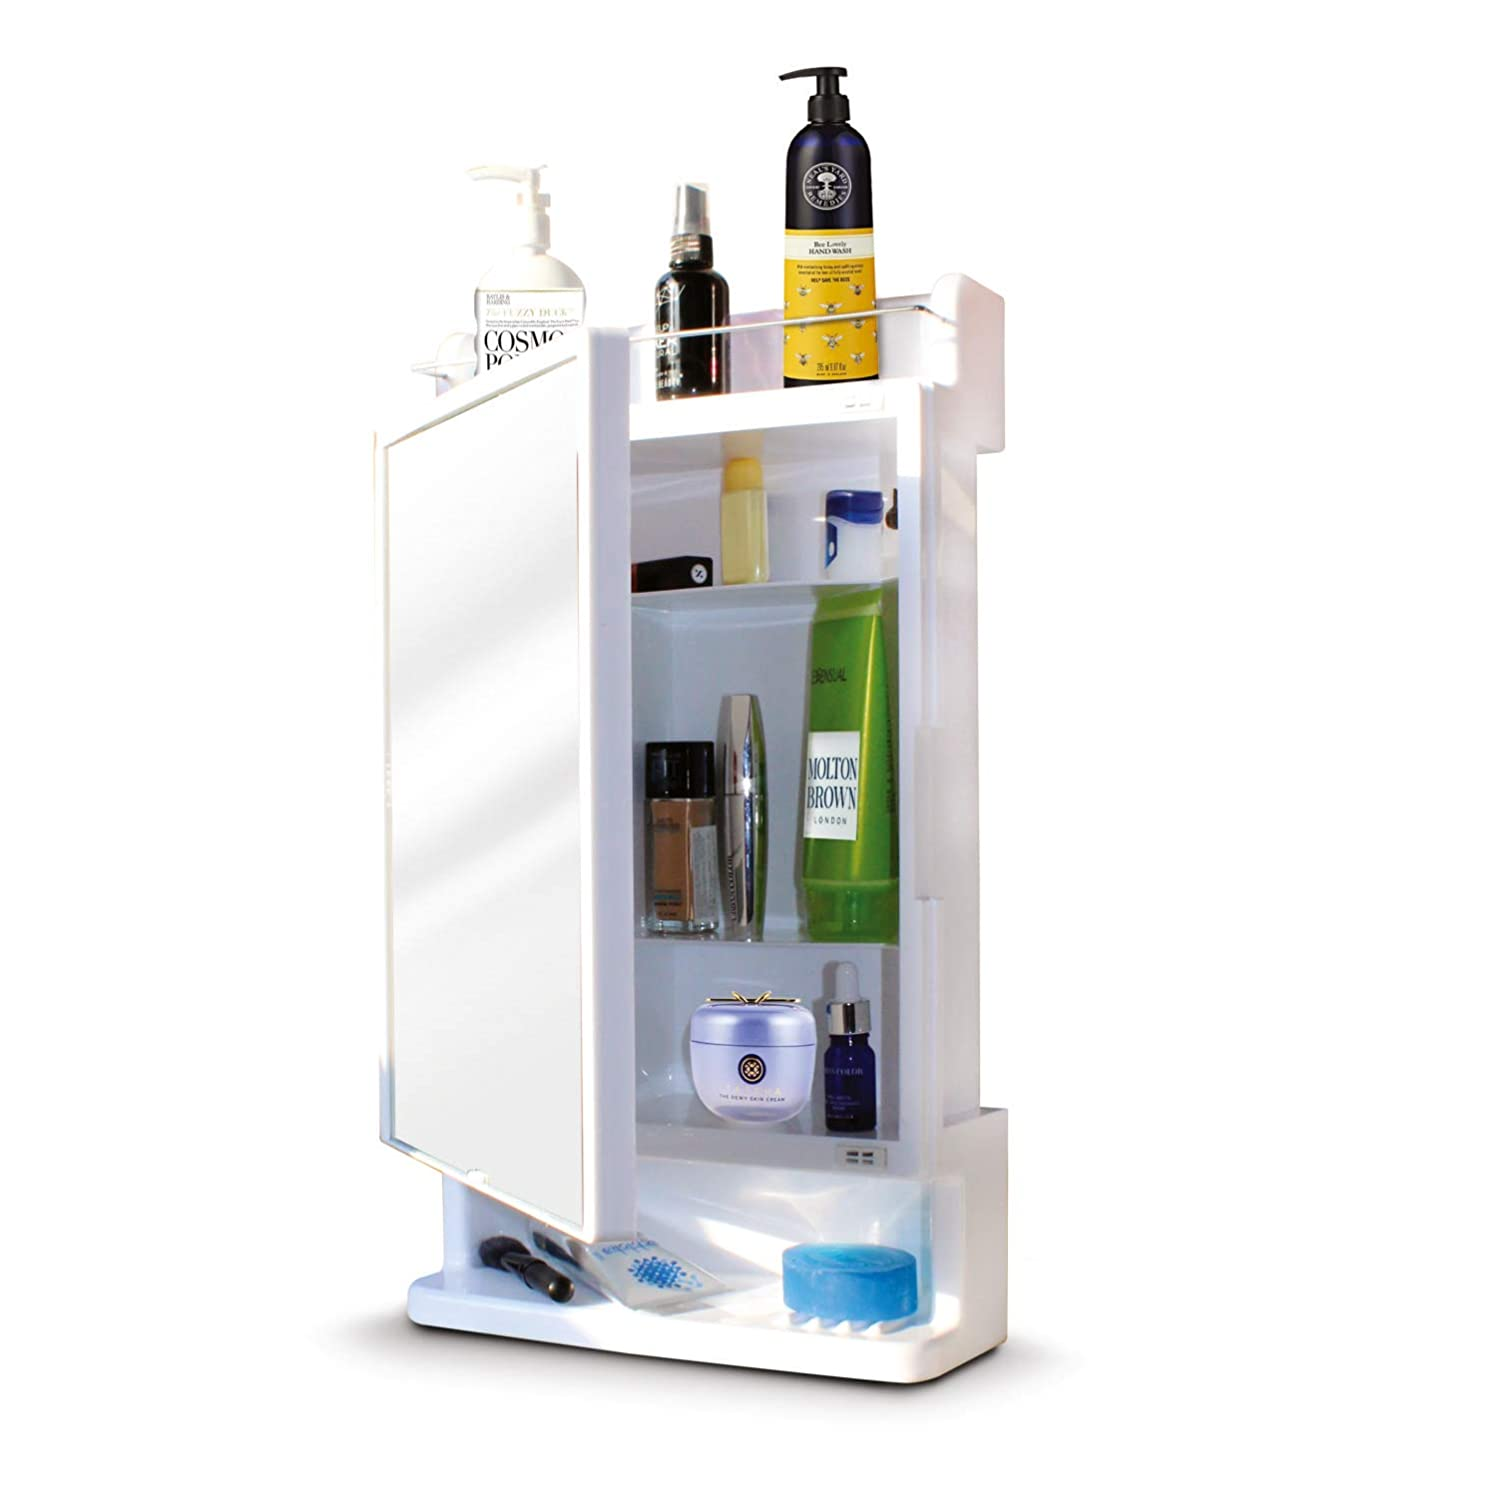 Best Bathroom Cabinet with Mirror India 2021